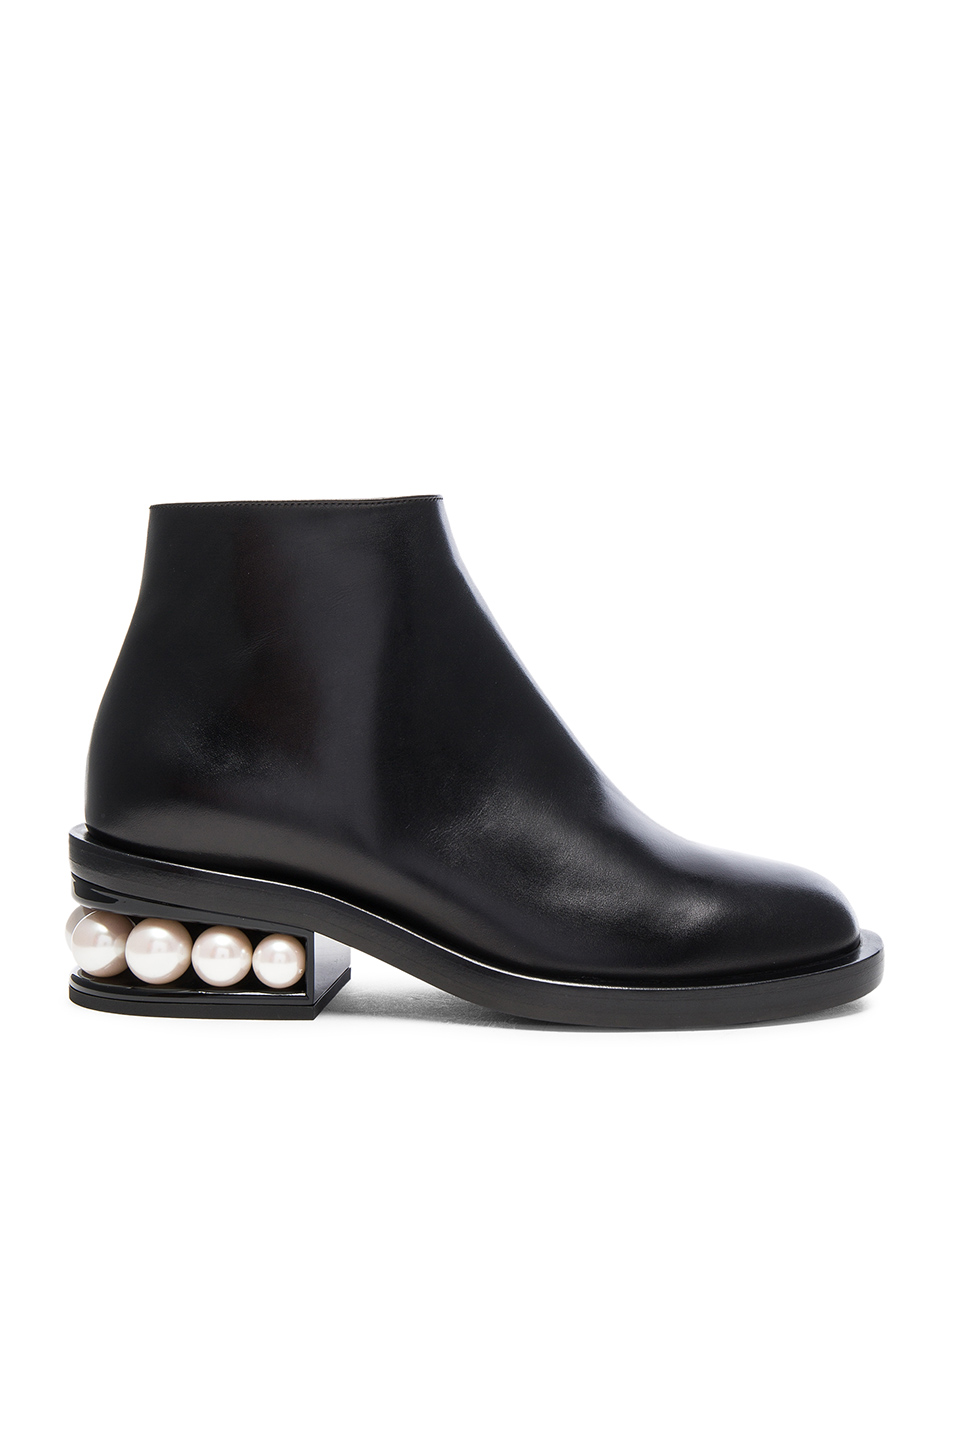 NICHOLAS KIRKWOOD 'Casati' Faux Pearl Heel Leather Ankle Boots at FORWARD